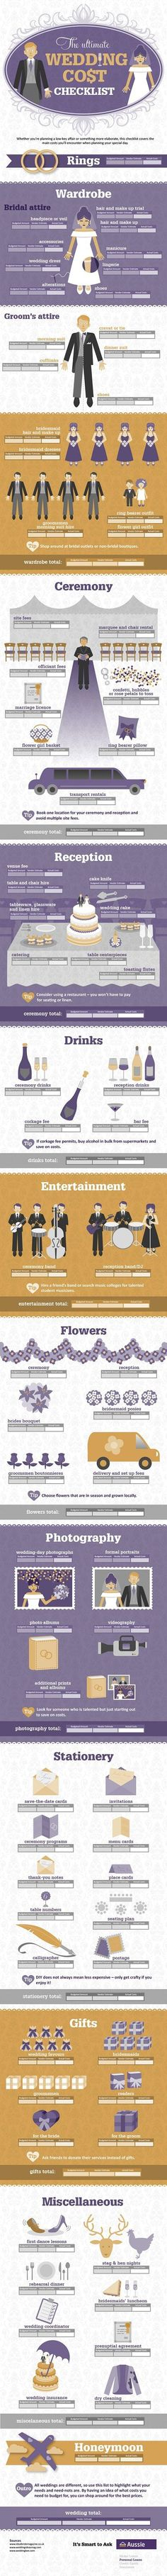 The Ultimate Wedding Cost Checklist Infographic - wish-upon-a-wedding